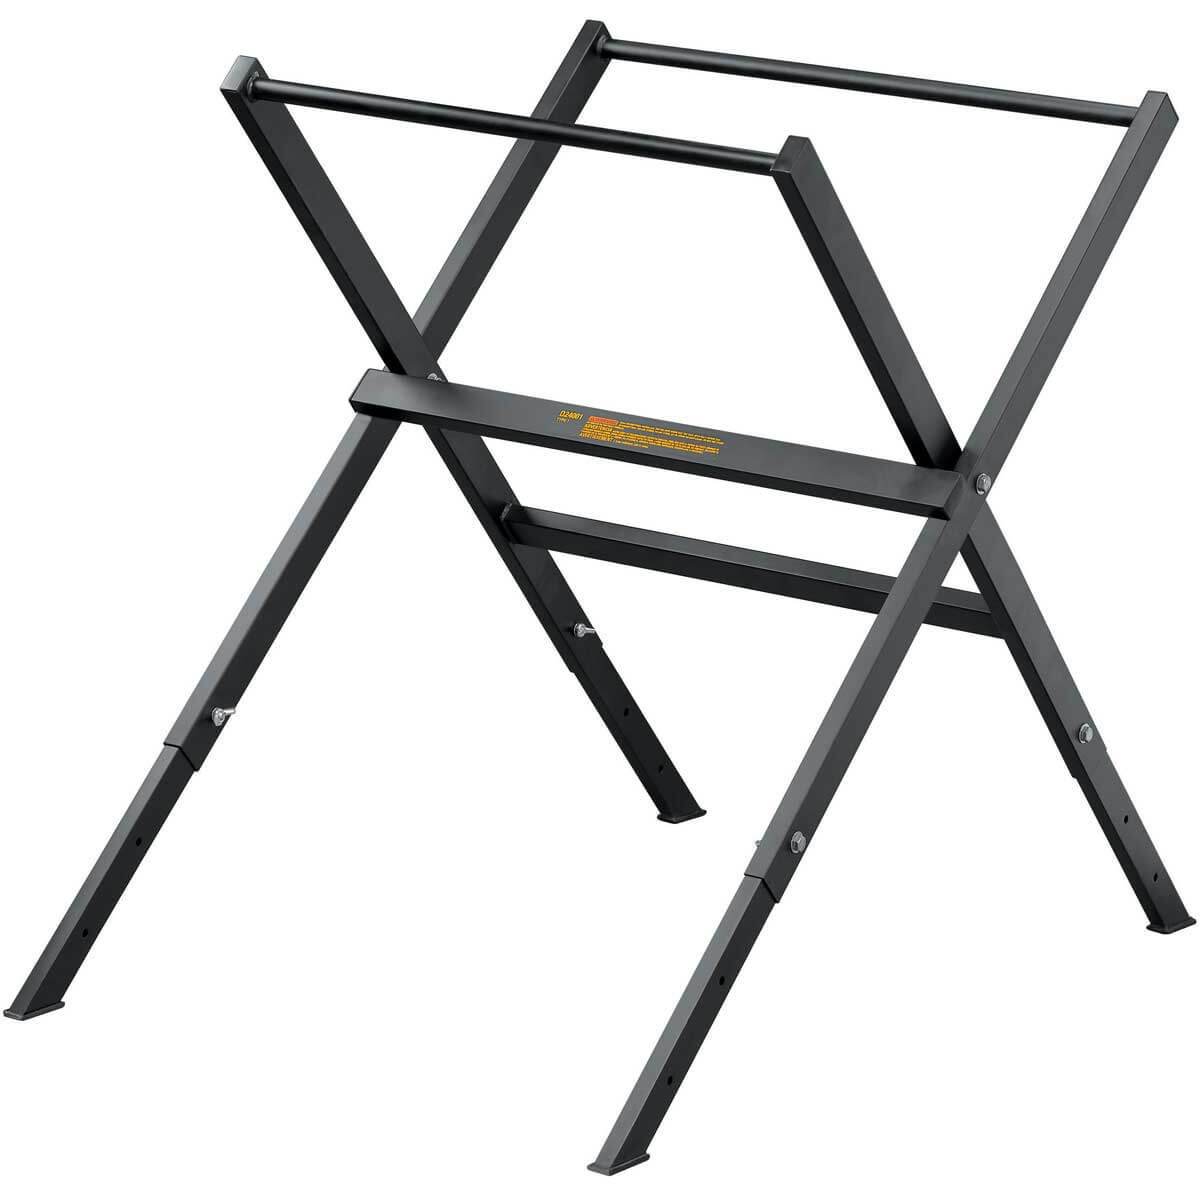 Dewalt Folding Stand for D24000 Tile Saw